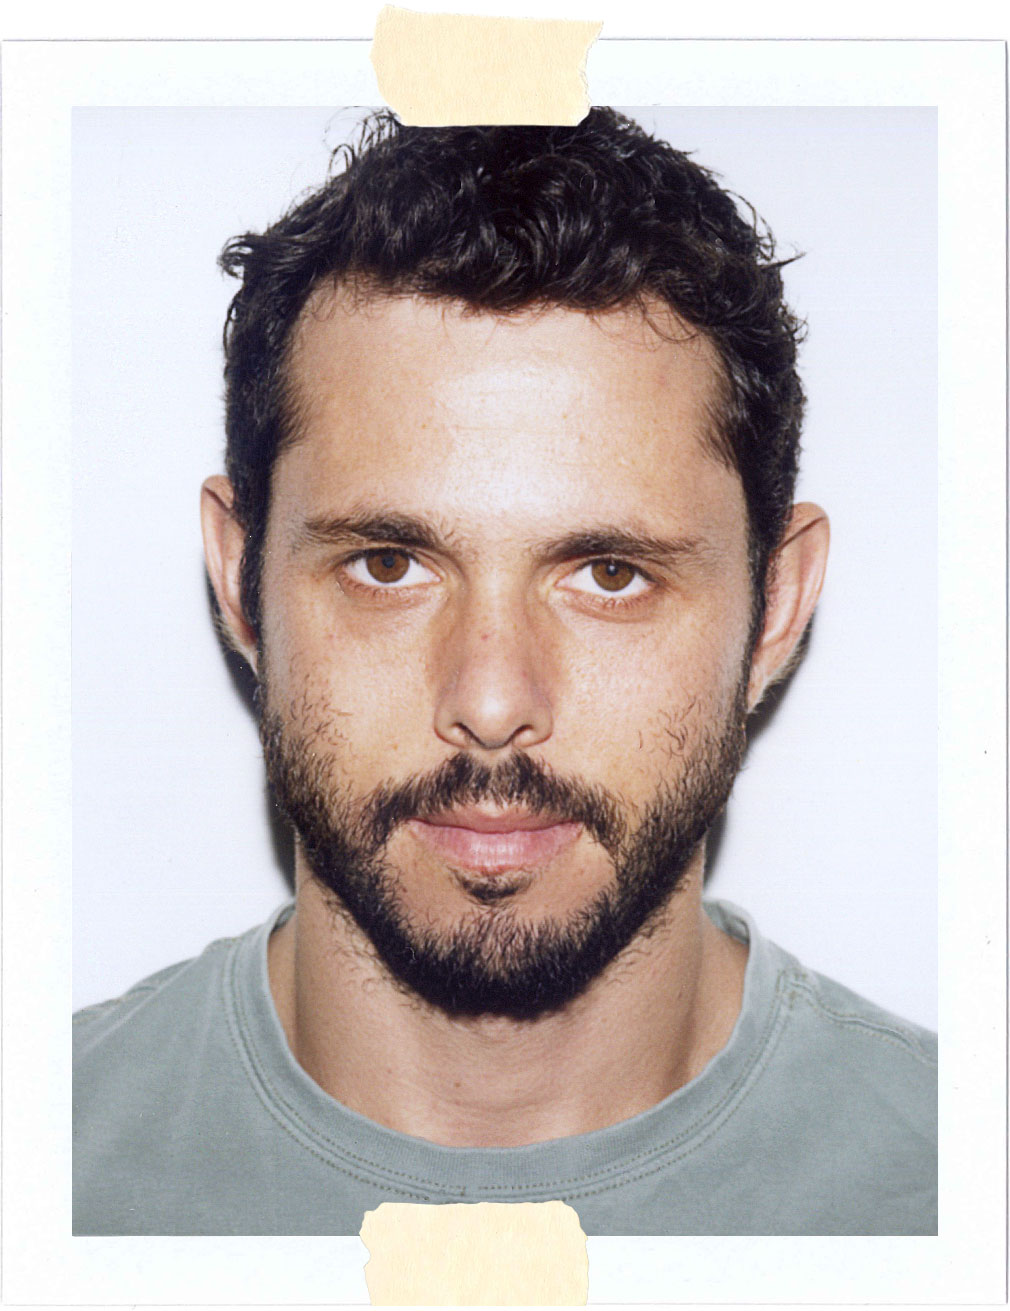 Polaroid Portrait of Chef Ari Taymor for Nice People Only by Jane Smith Creative Agency